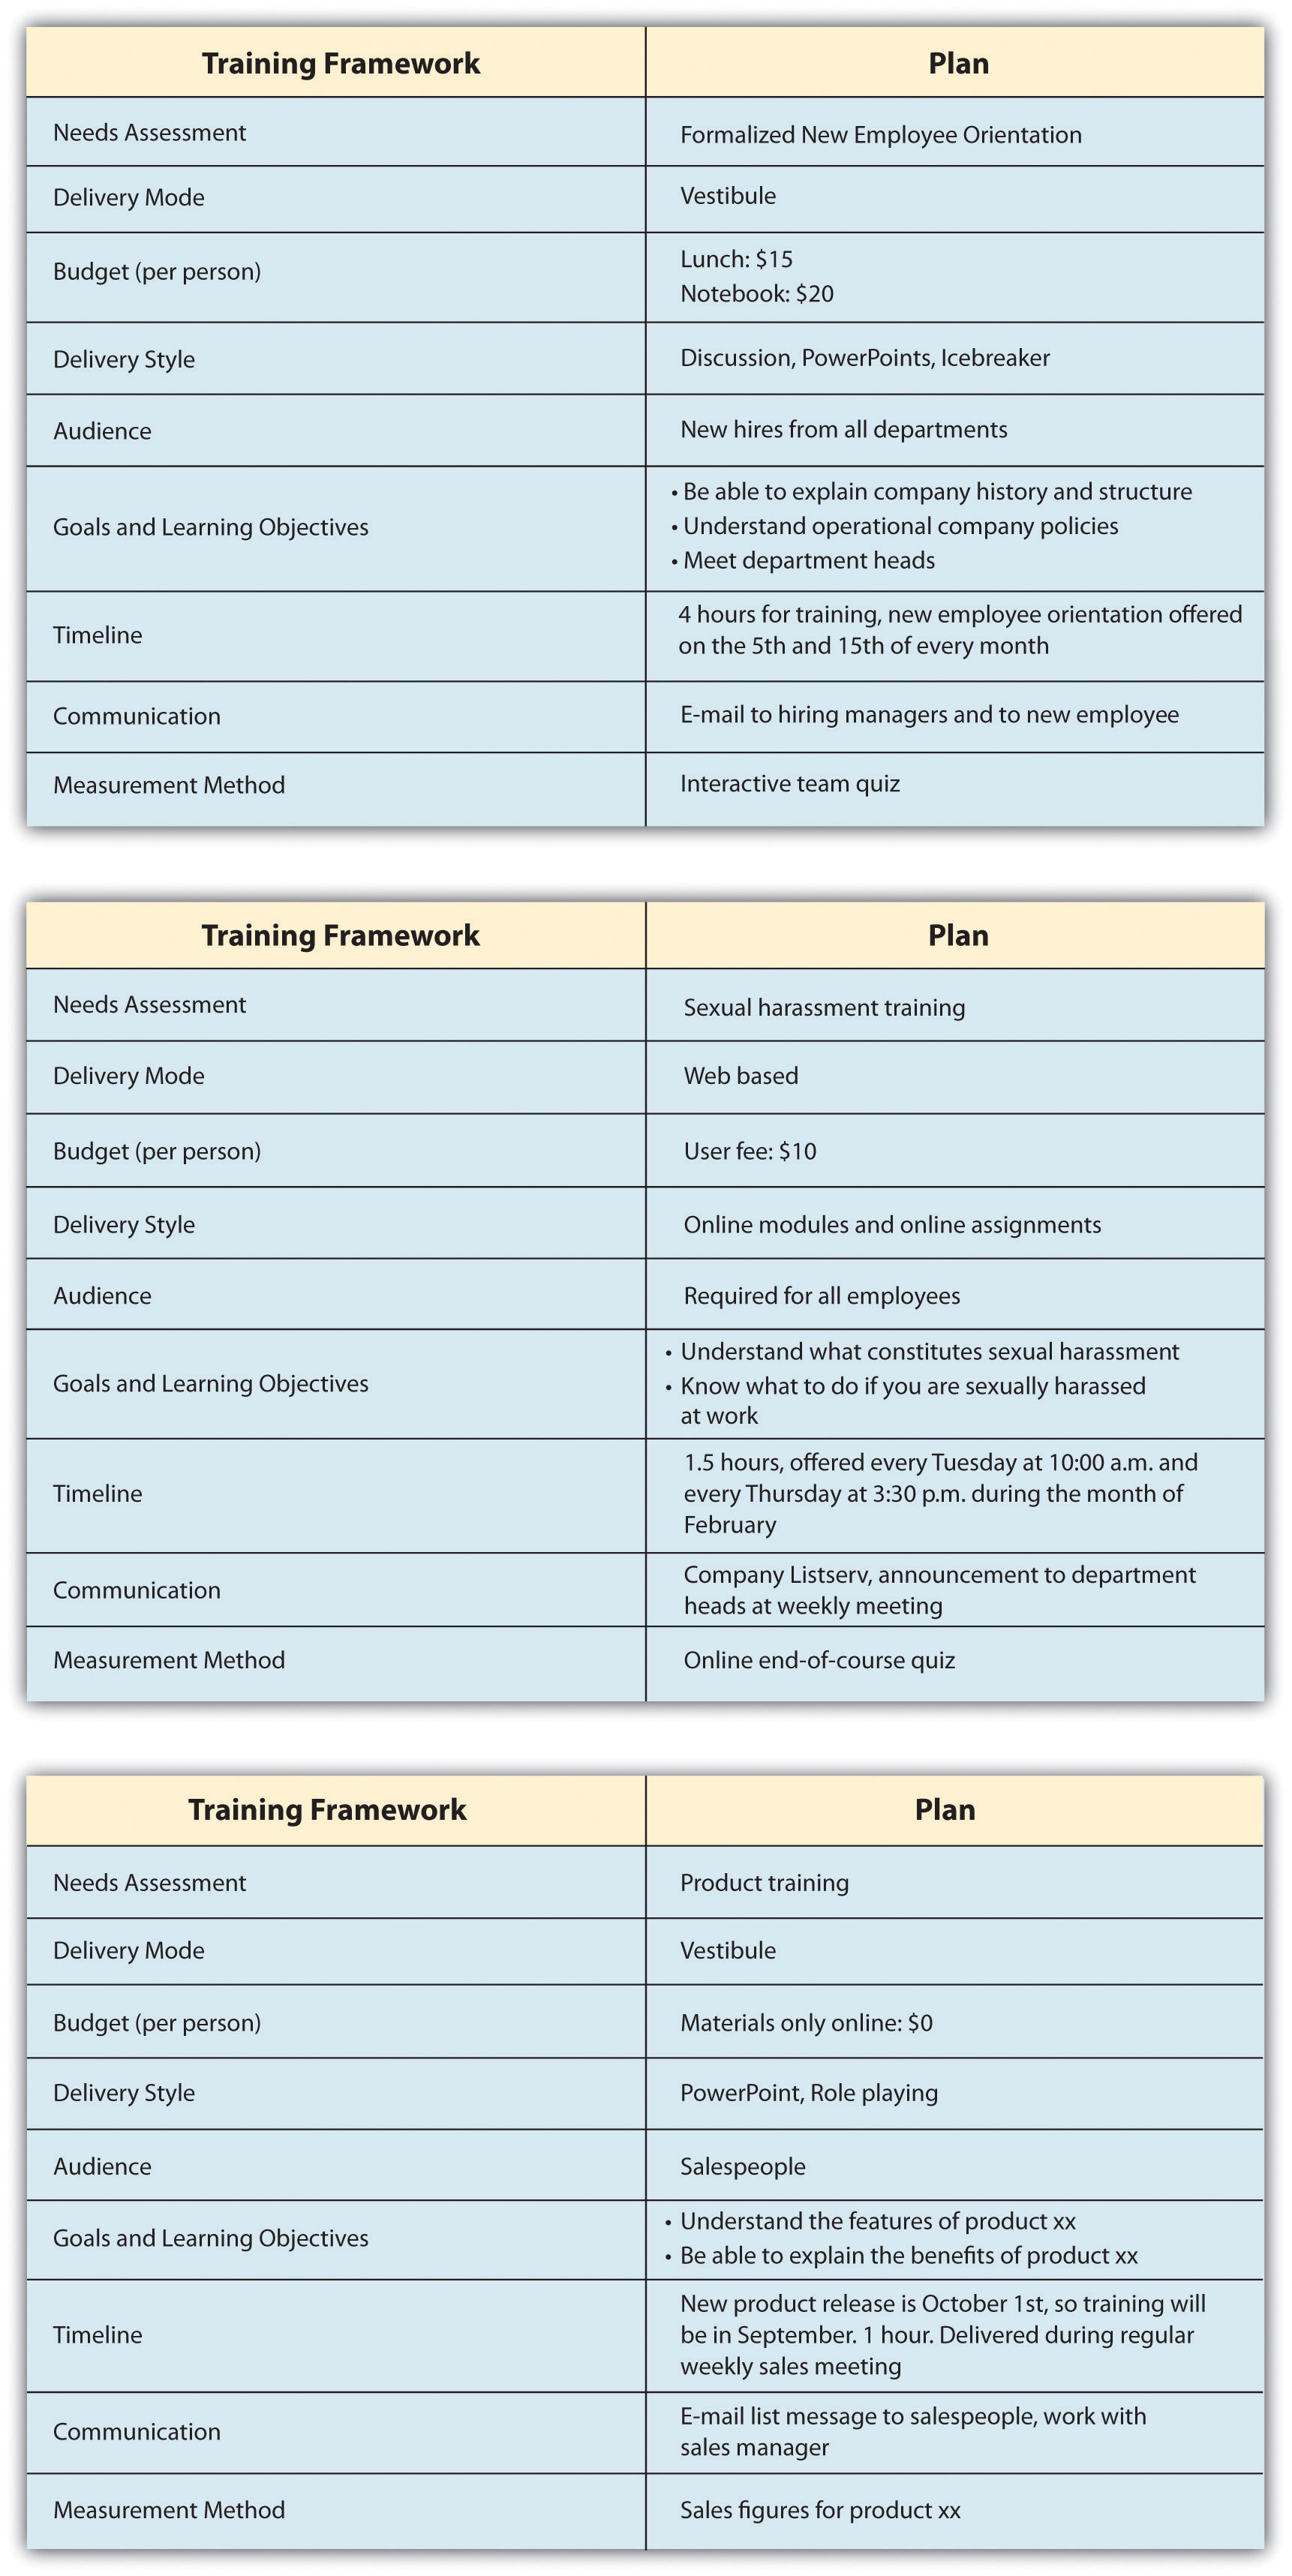 Once the training framework has been developed, the training content can be developed. The training plan serves as a starting point for training development.